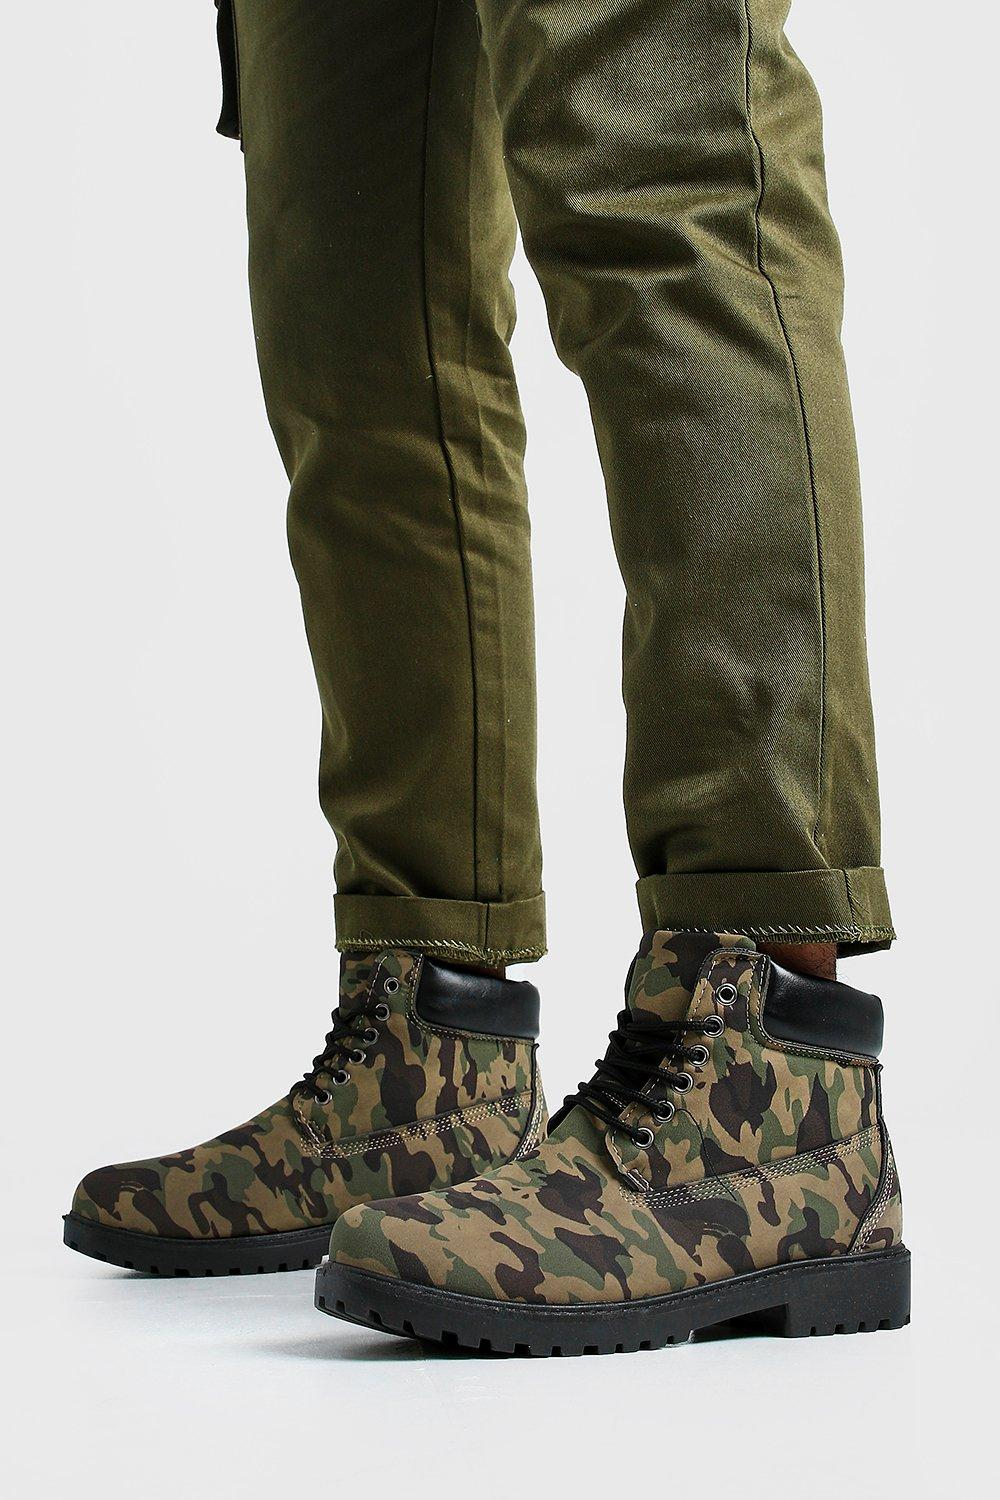 mens camo worker boots - multi